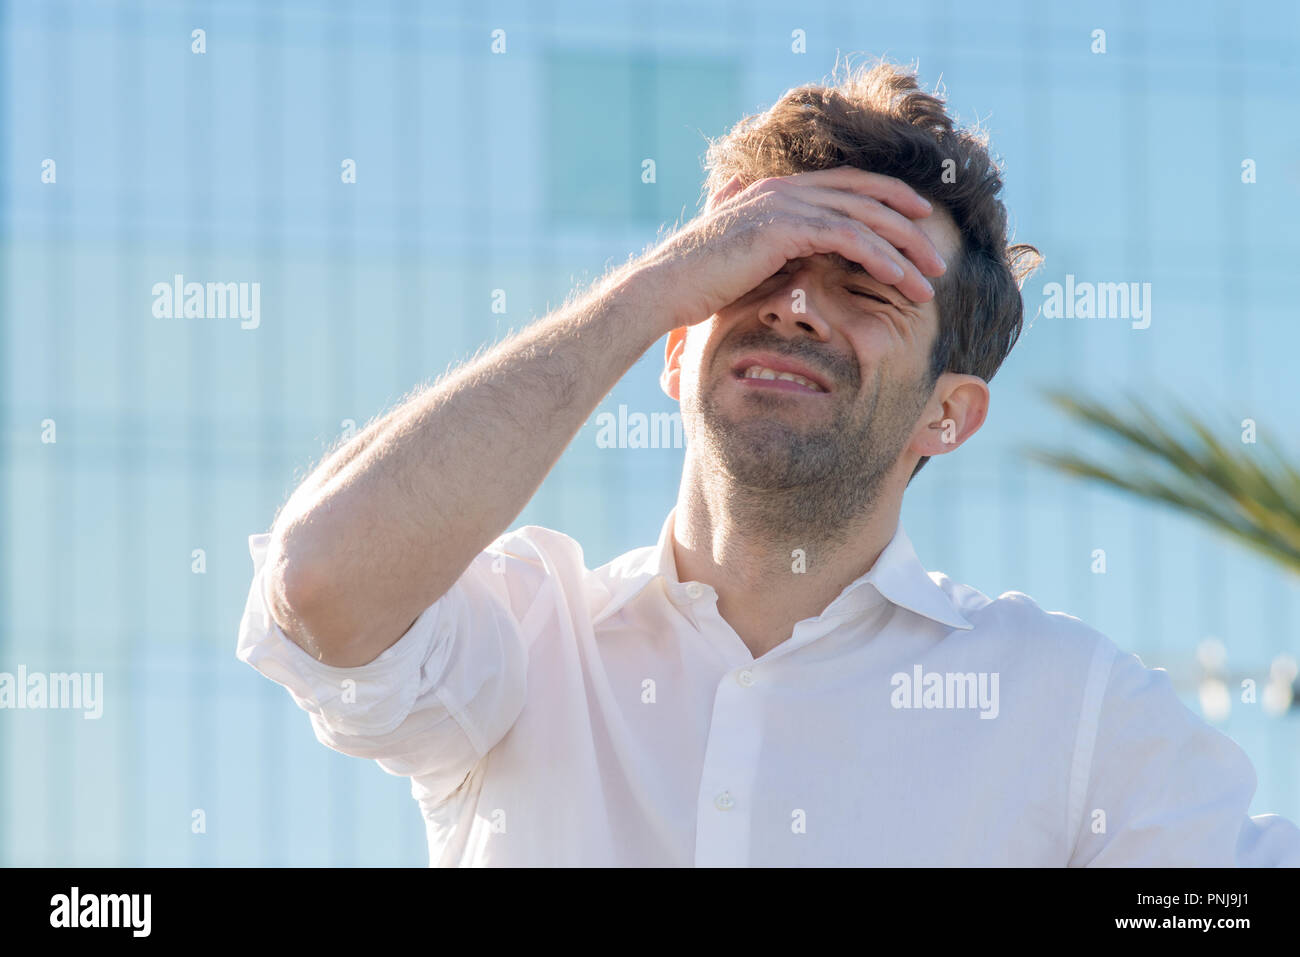 young man with stress or loser - Stock Image